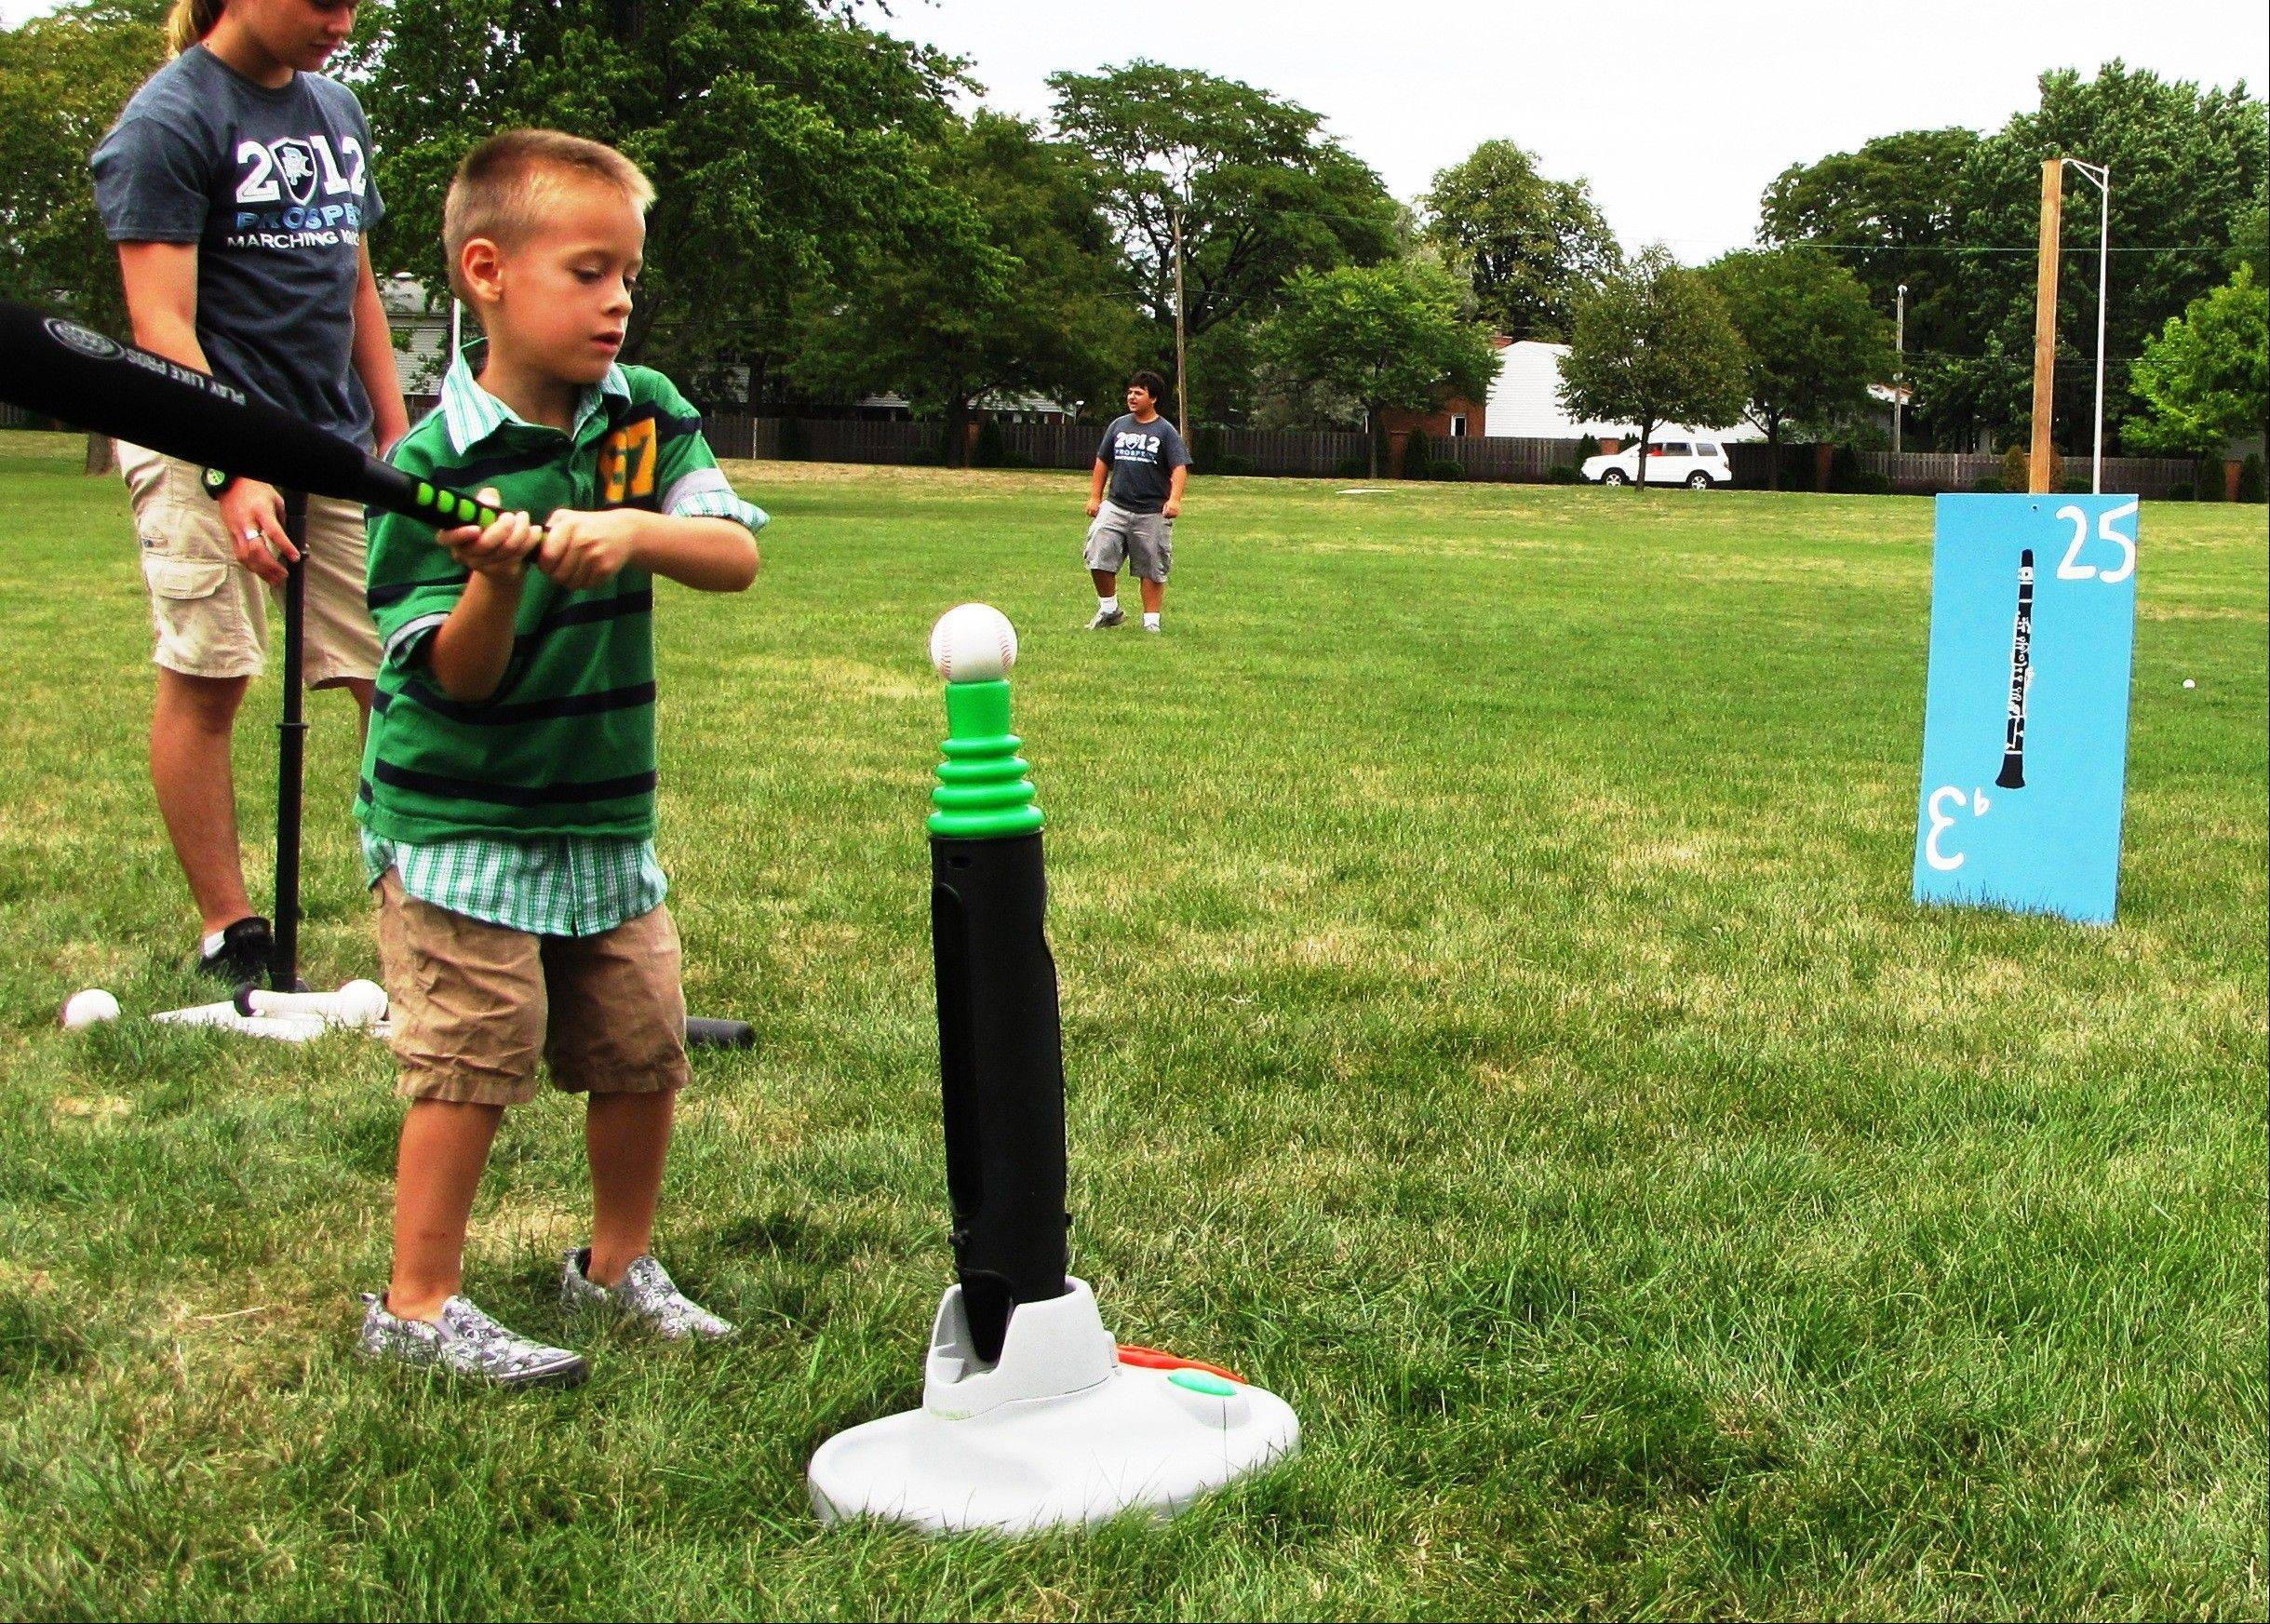 Landon Salgado, 5, of Palatine takes a swing at the Home Run Derby game.